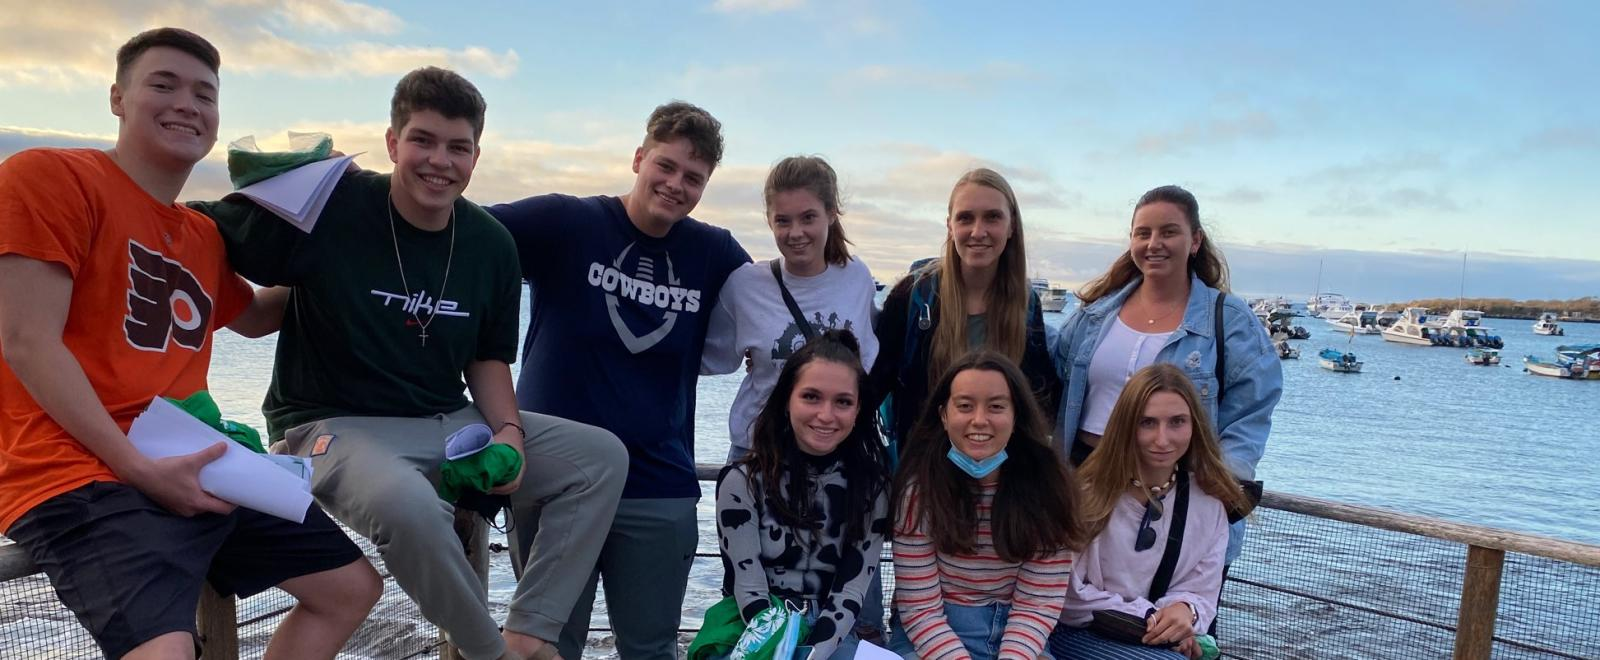 Projects Abroad volunteers enjoy their first week of the 2020 Gap Semester in the Galapagos Islands